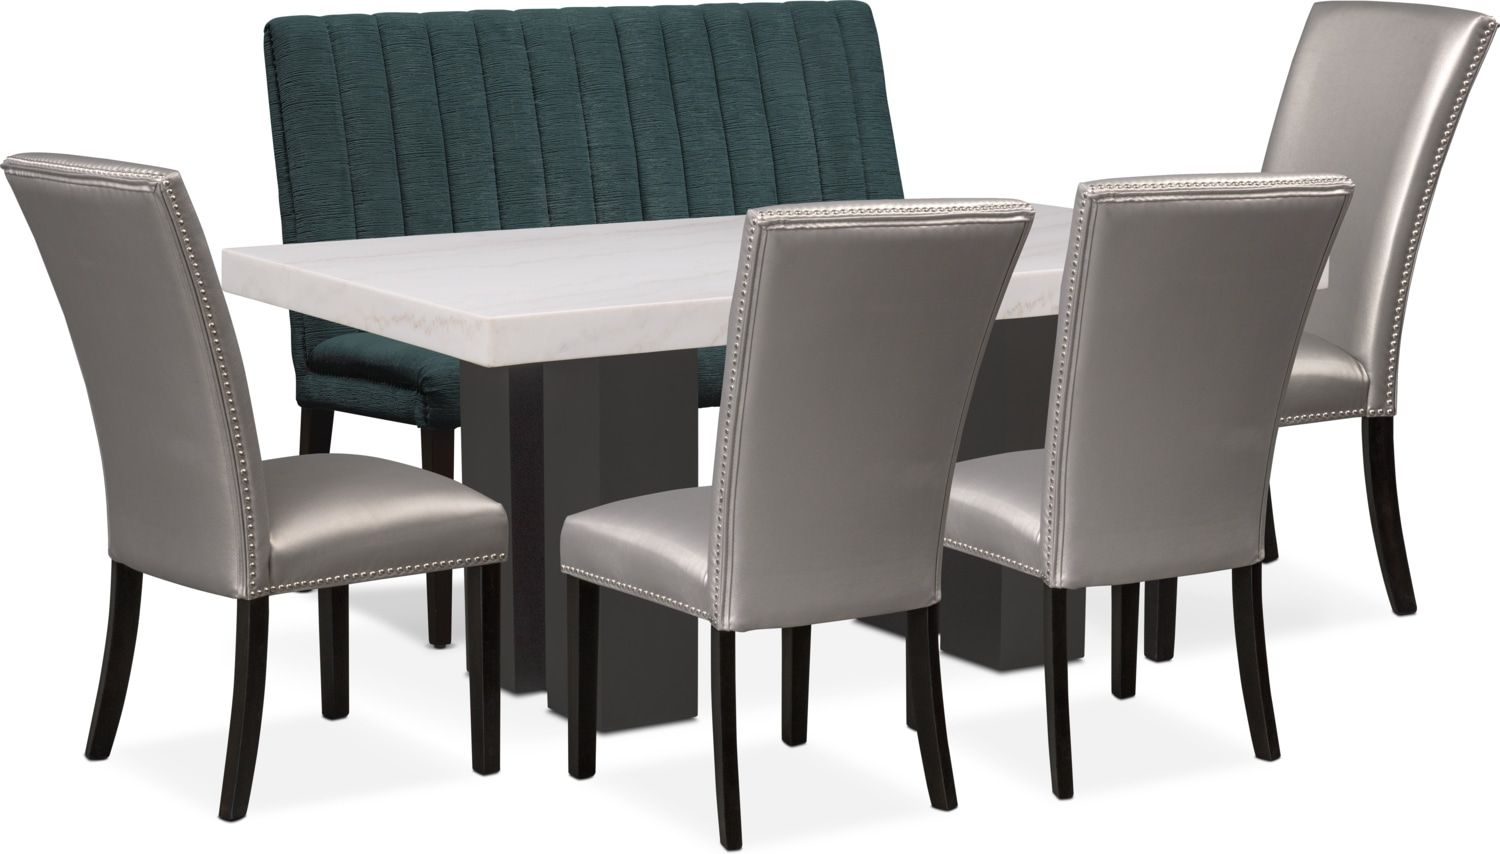 Prime Artemis Marble Dining Table 4 Upholstered Dining Chairs Bralicious Painted Fabric Chair Ideas Braliciousco